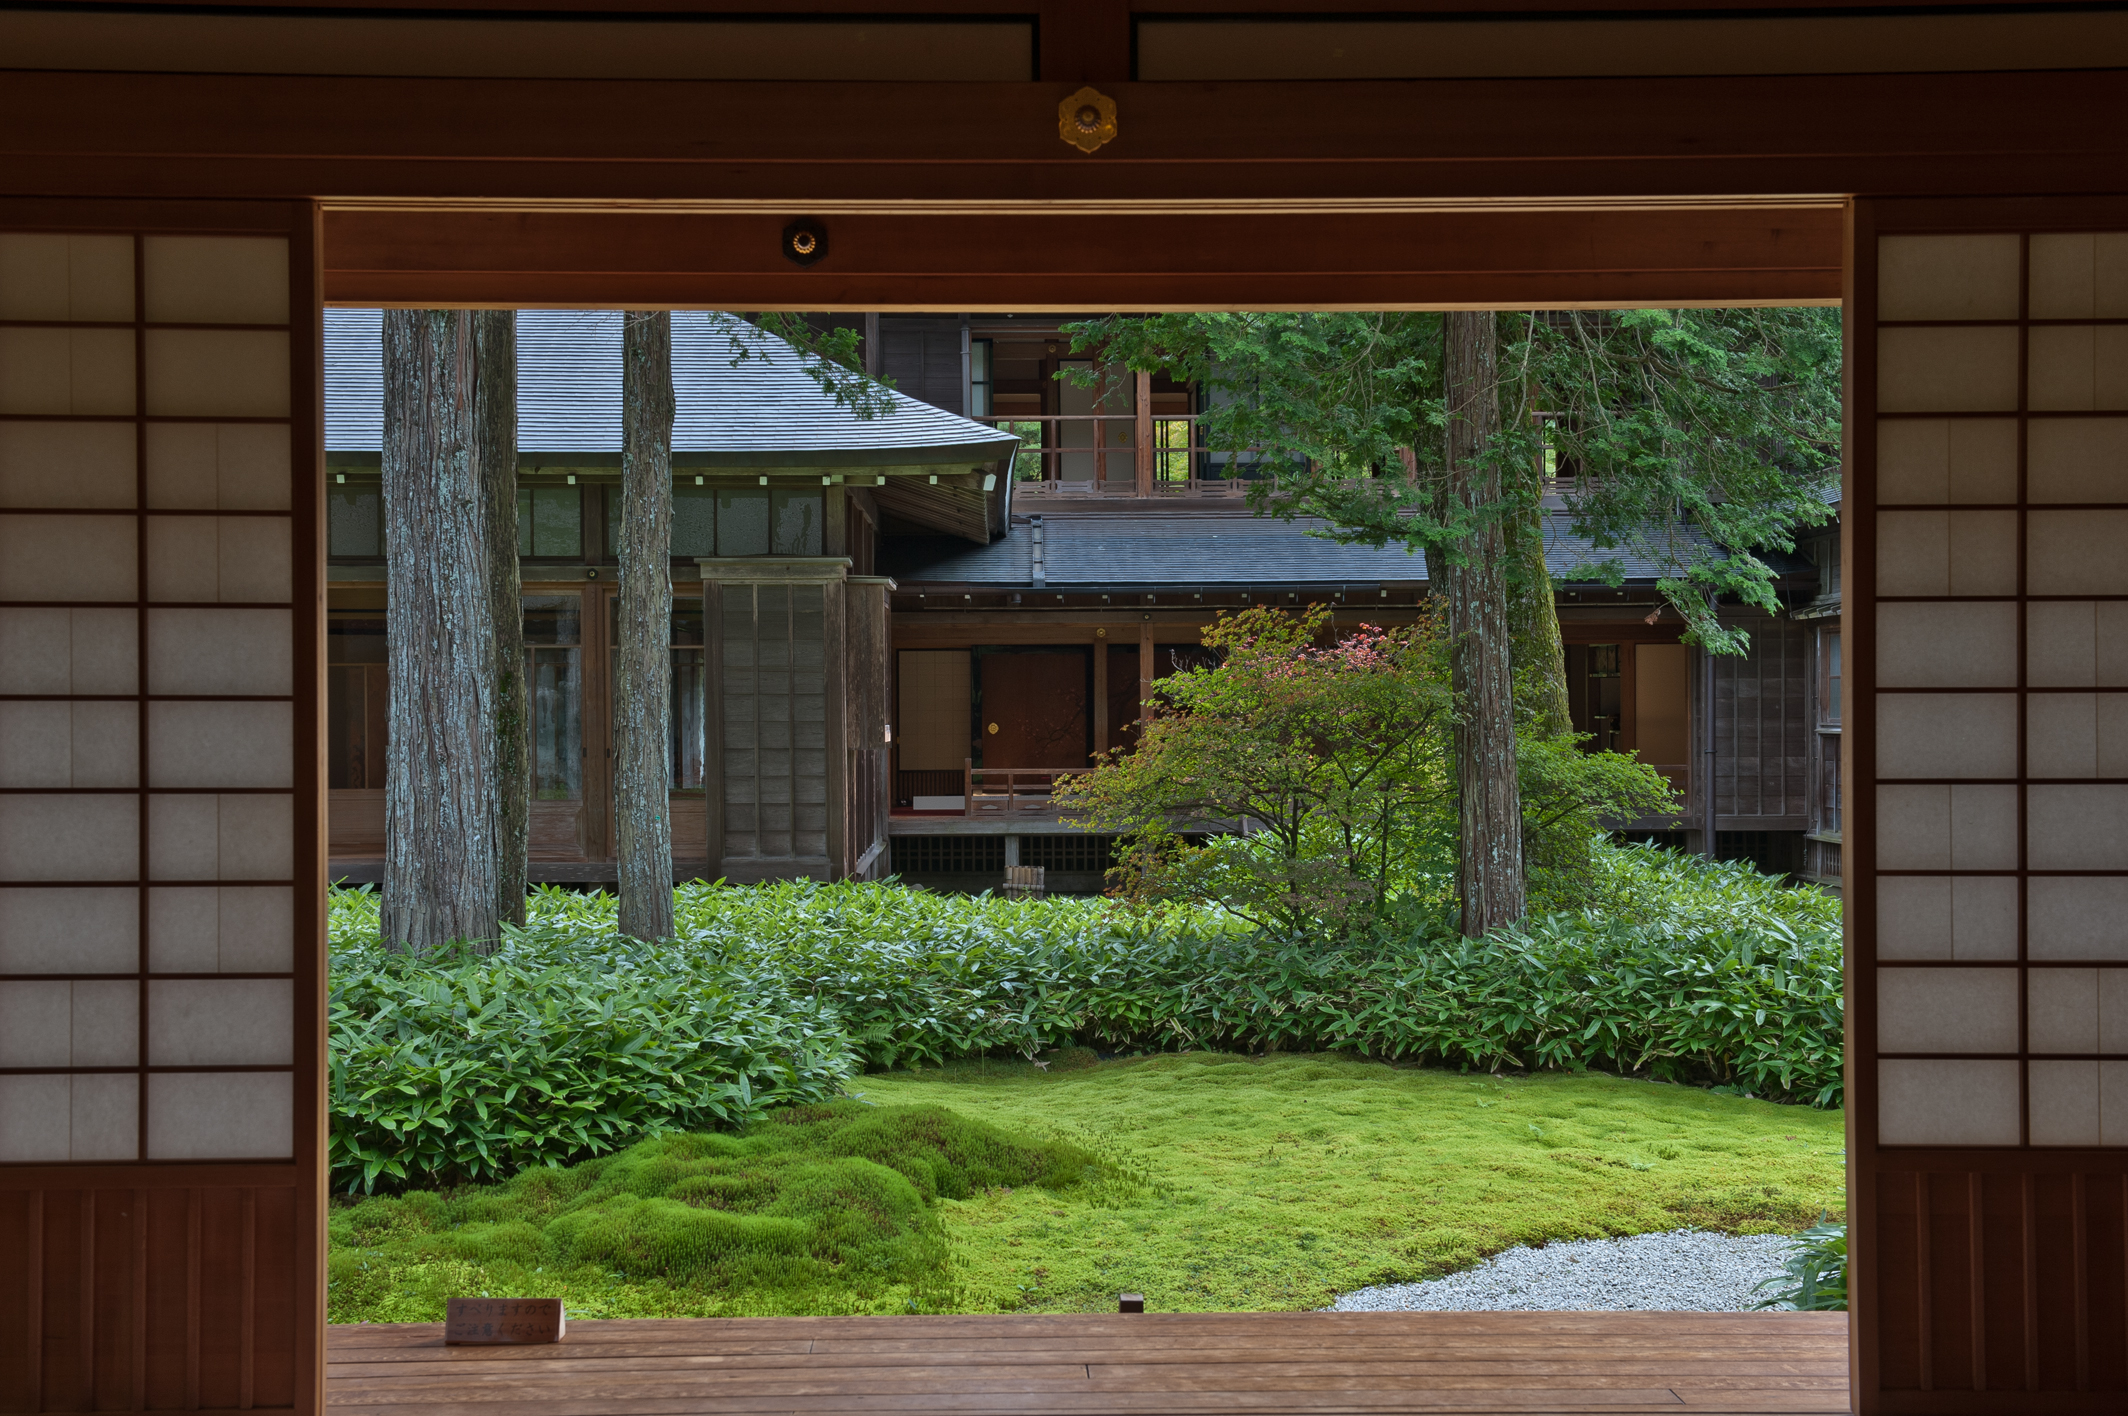 Past and present: The main structure of the Tamozawa Imperial Villa was relocated to Nikko from Akasaka in Tokyo in 1899, and its garden boasts design touches from as early as the eighth century. Its inner garden is dominated by luxurious swaths of moss. | STEPHEN MANSFIELD